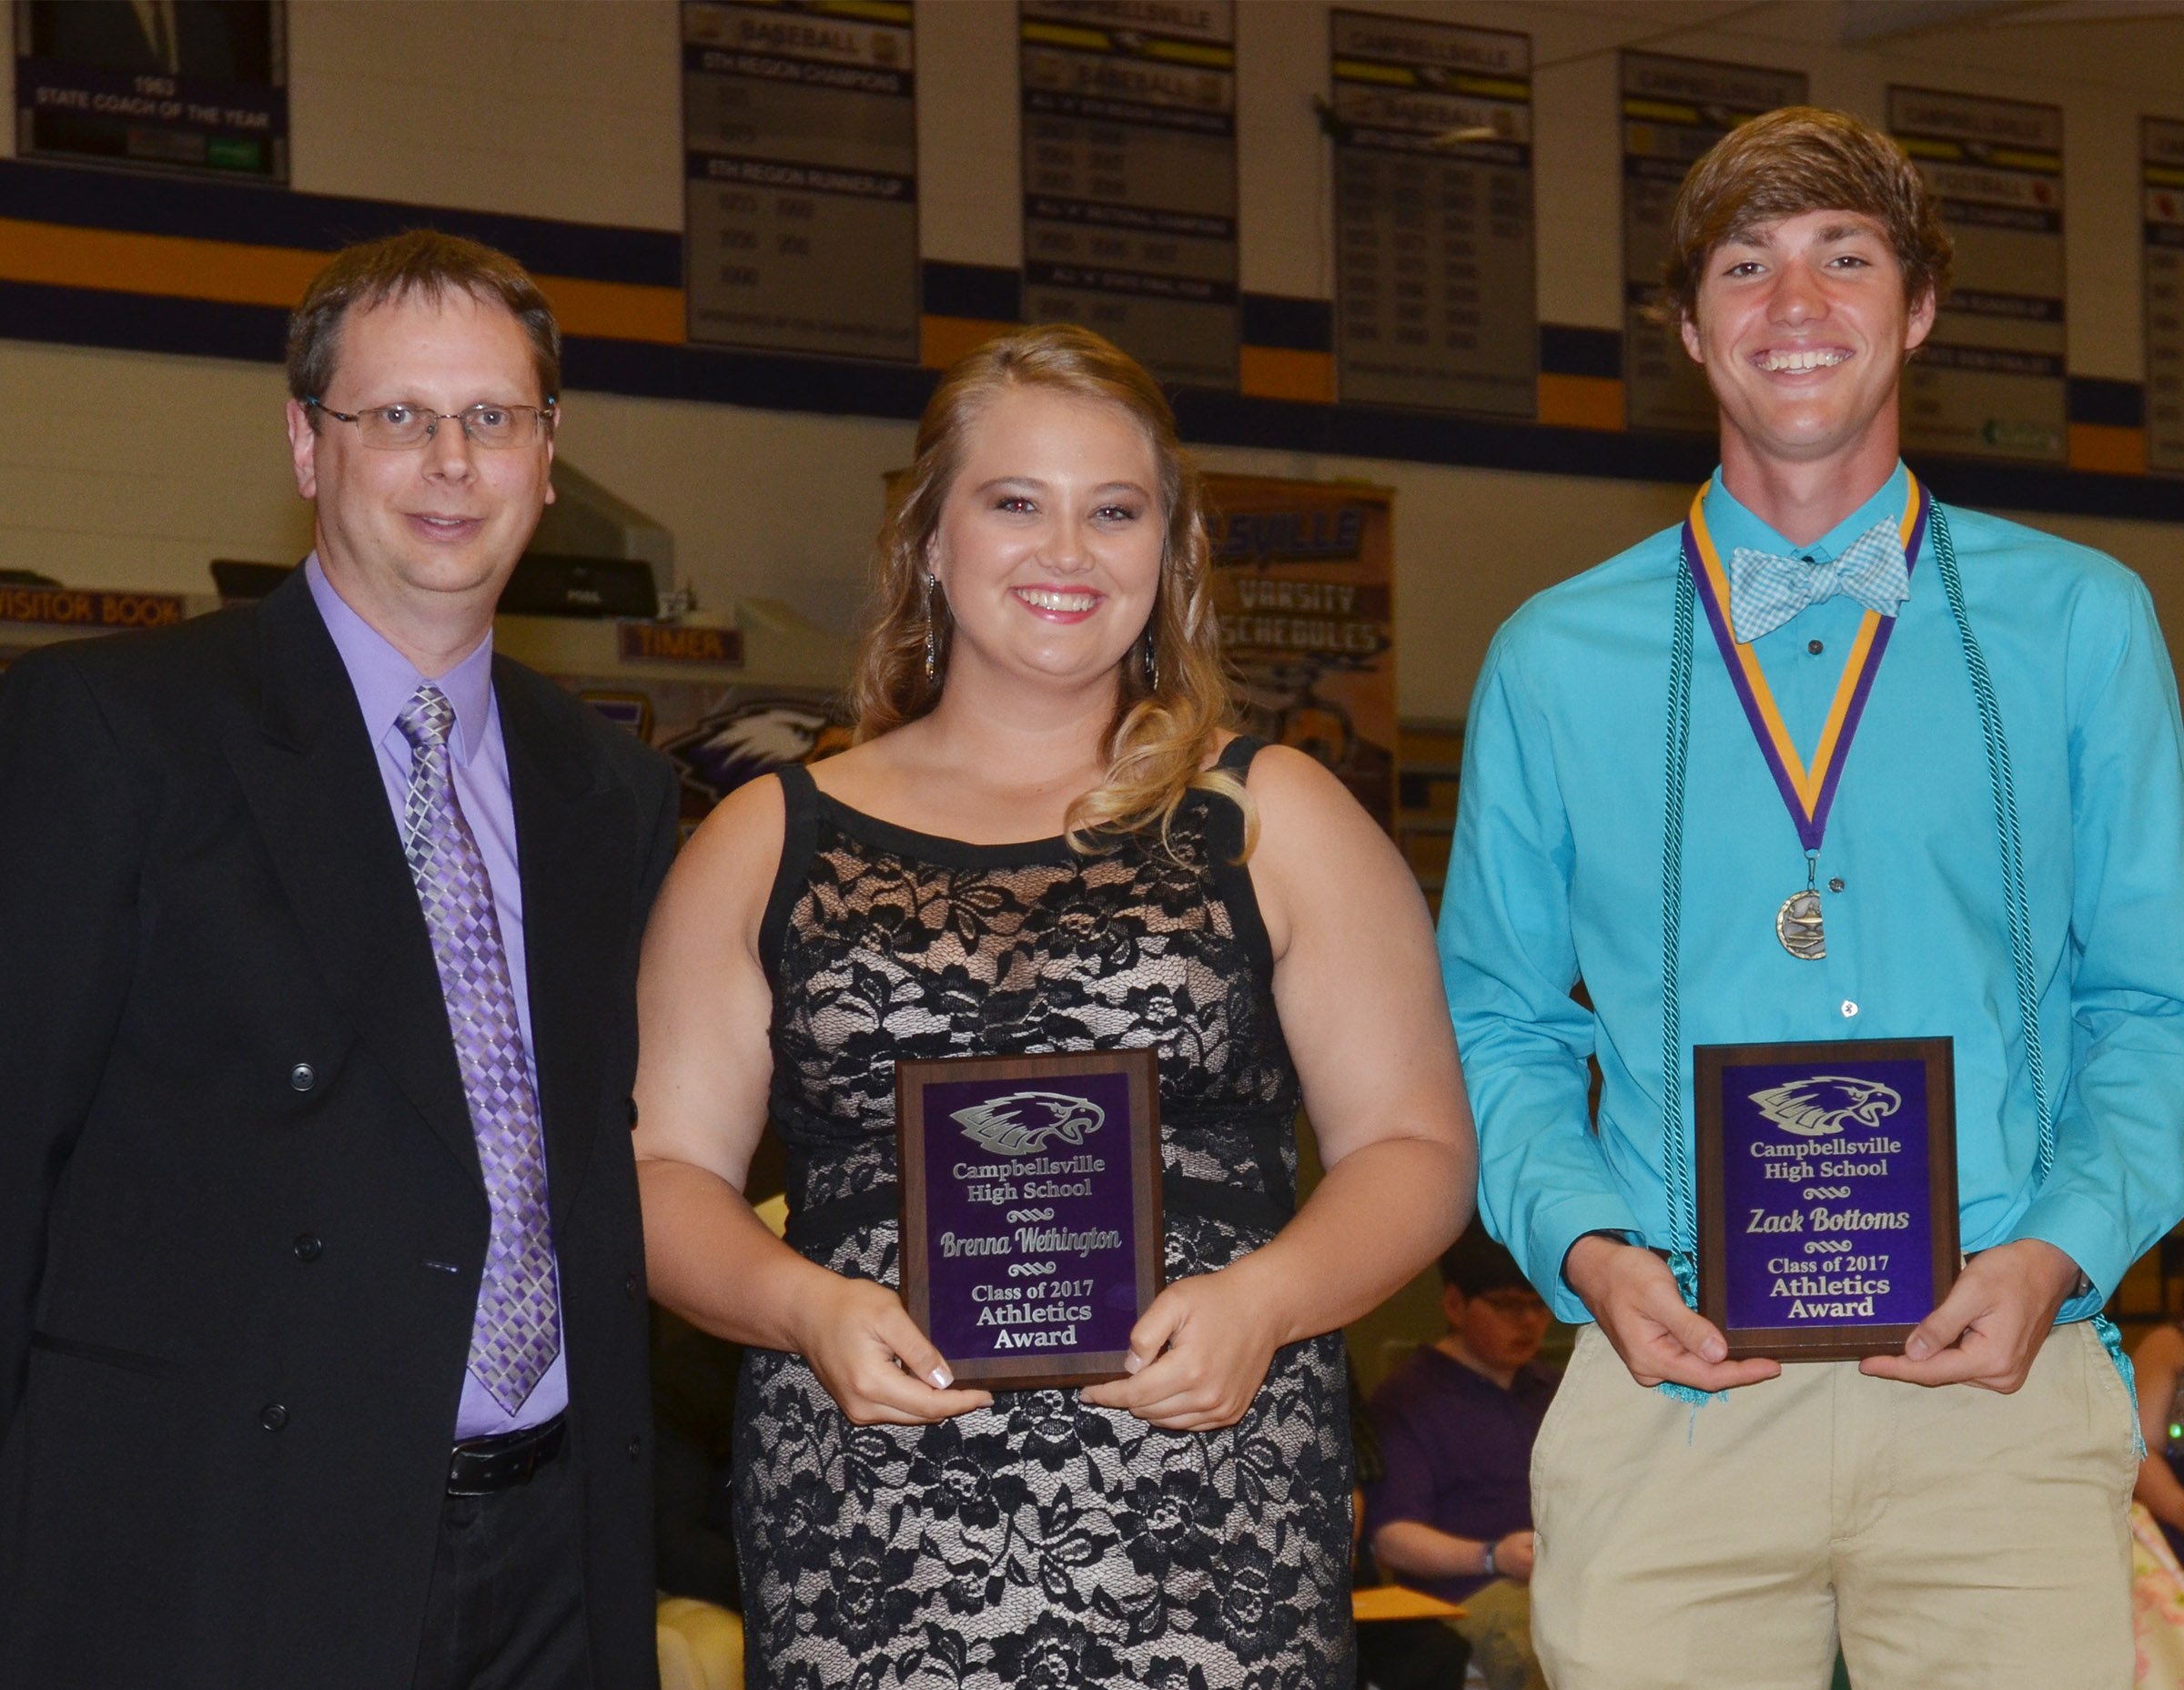 Brenna Wethington and Zack Bottoms receive the athletics award. They are pictured with guidance counselor Richard Dooley.